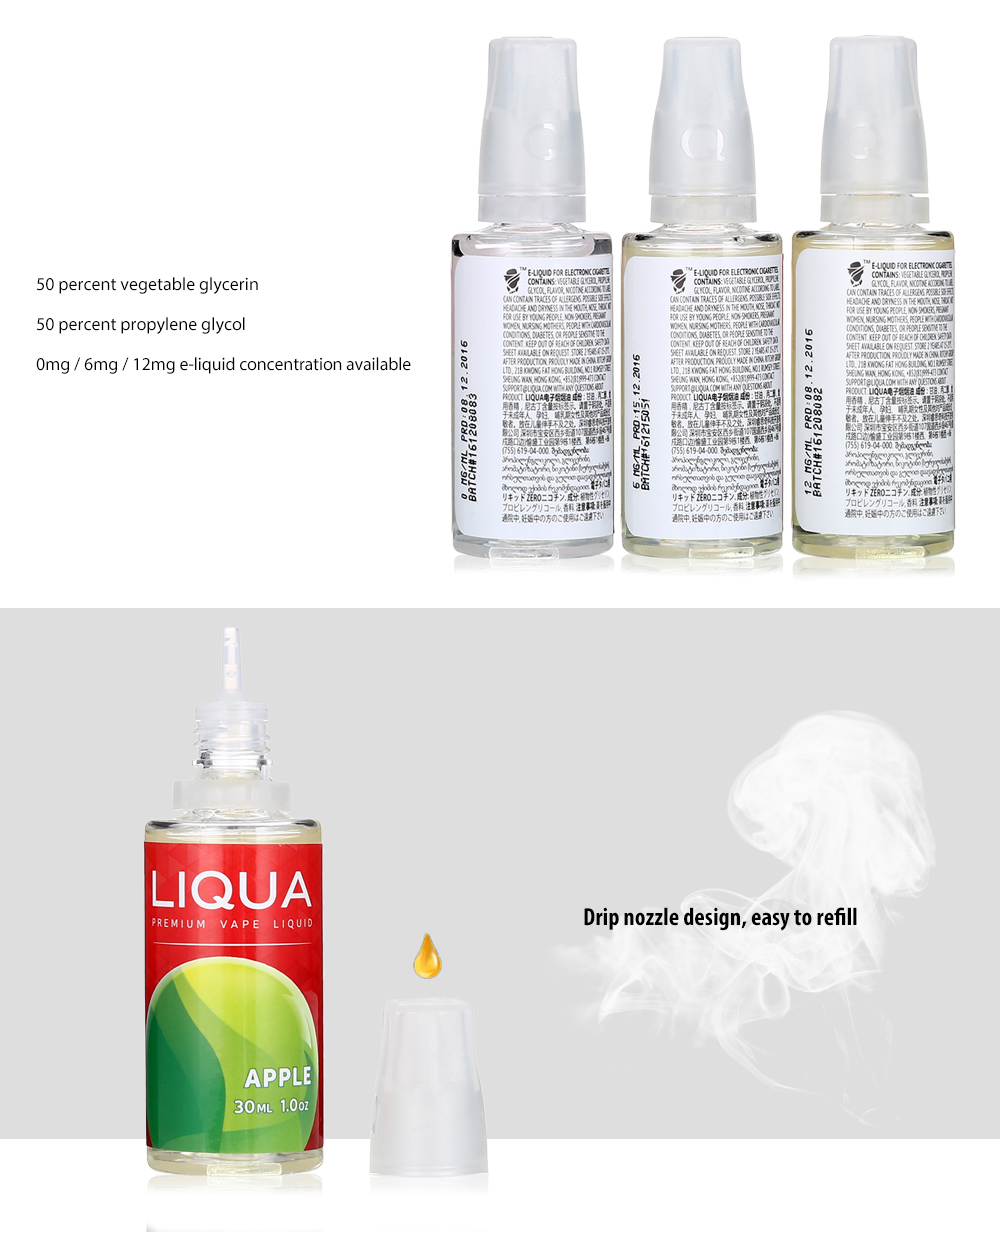 LIQUA Liqua C Series Apple E-Liquid for E Cigarette